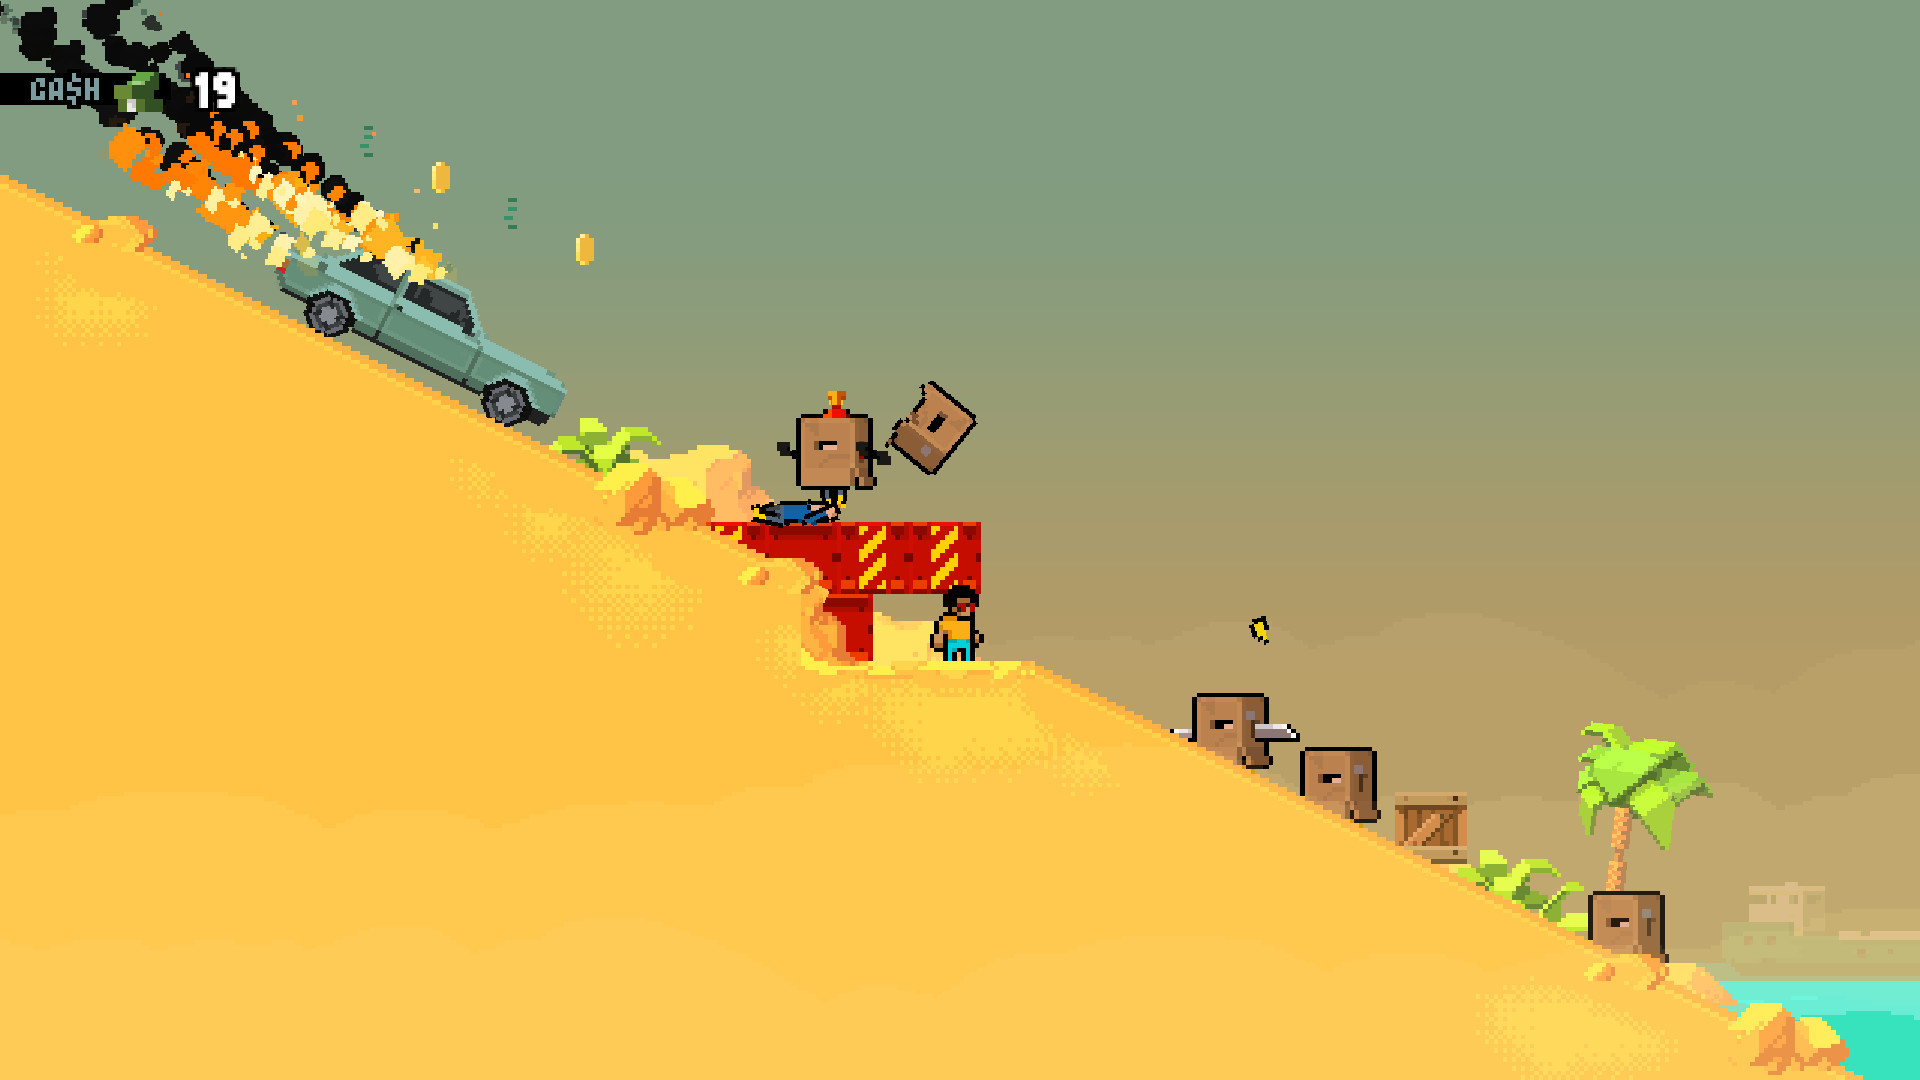 Shootout on Cash Island Screenshot 1